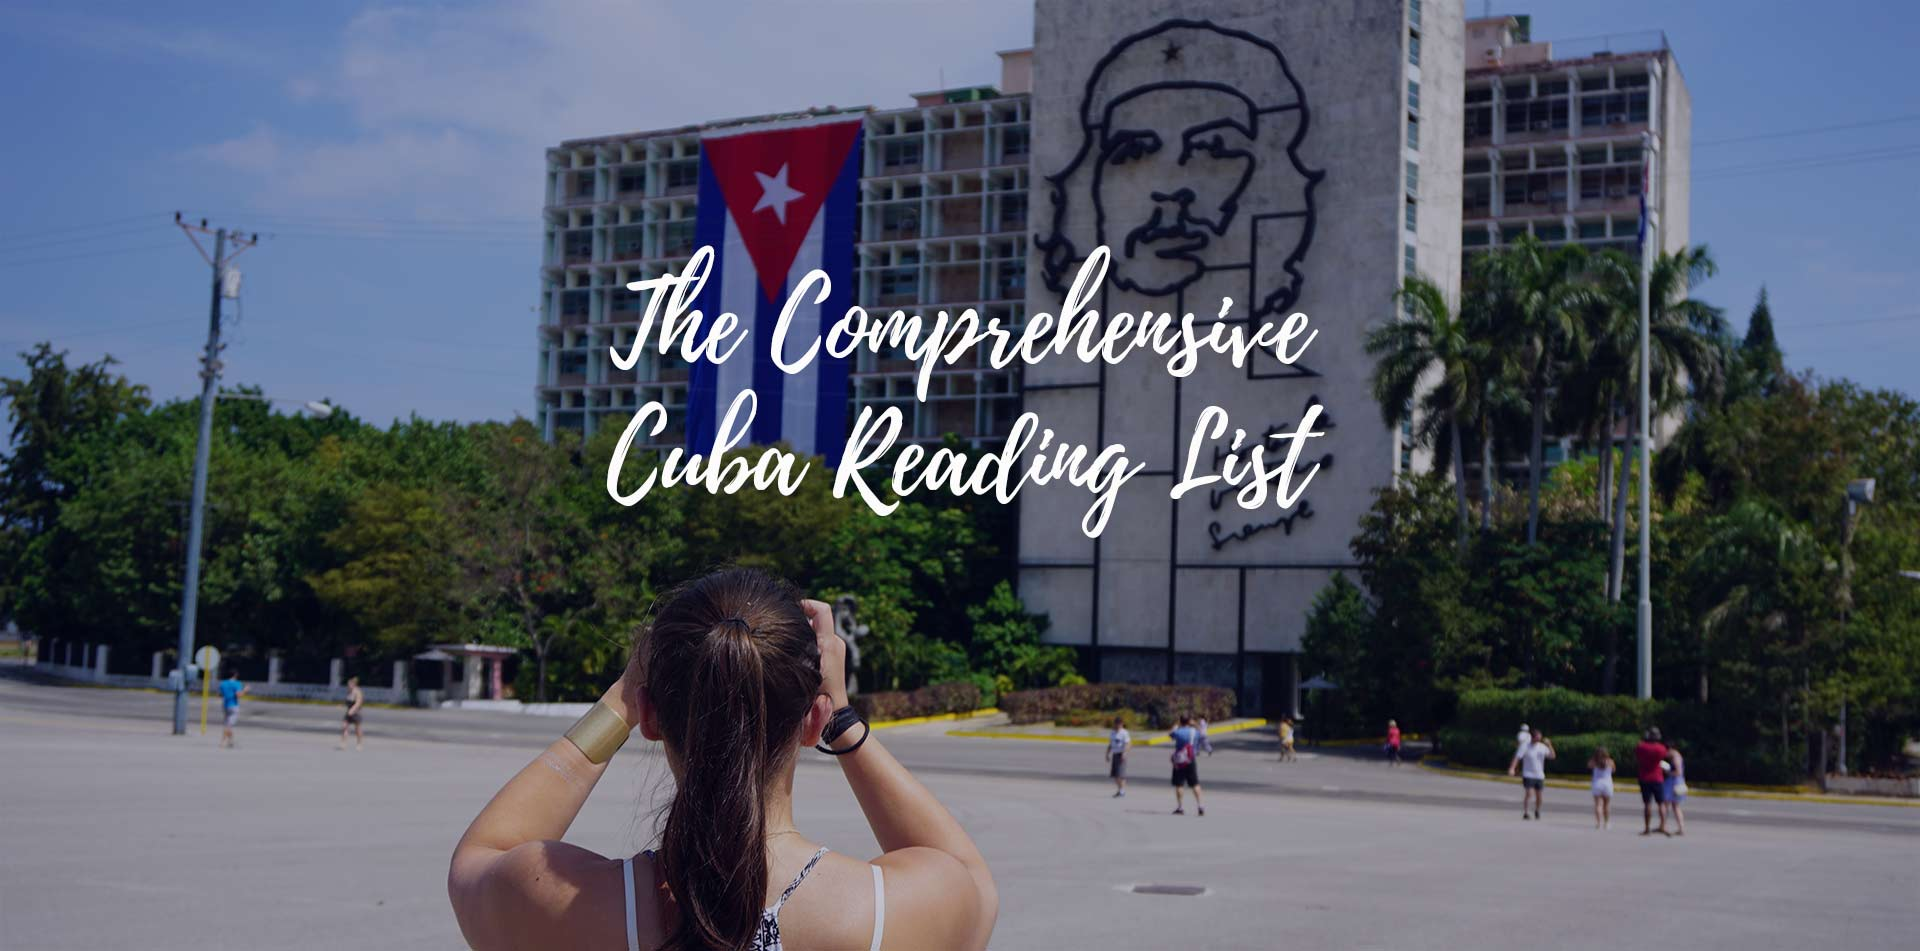 North America Caribbean the comprehensive Cuba reading list Revolution Plaza Havana - luxury vacation destinations